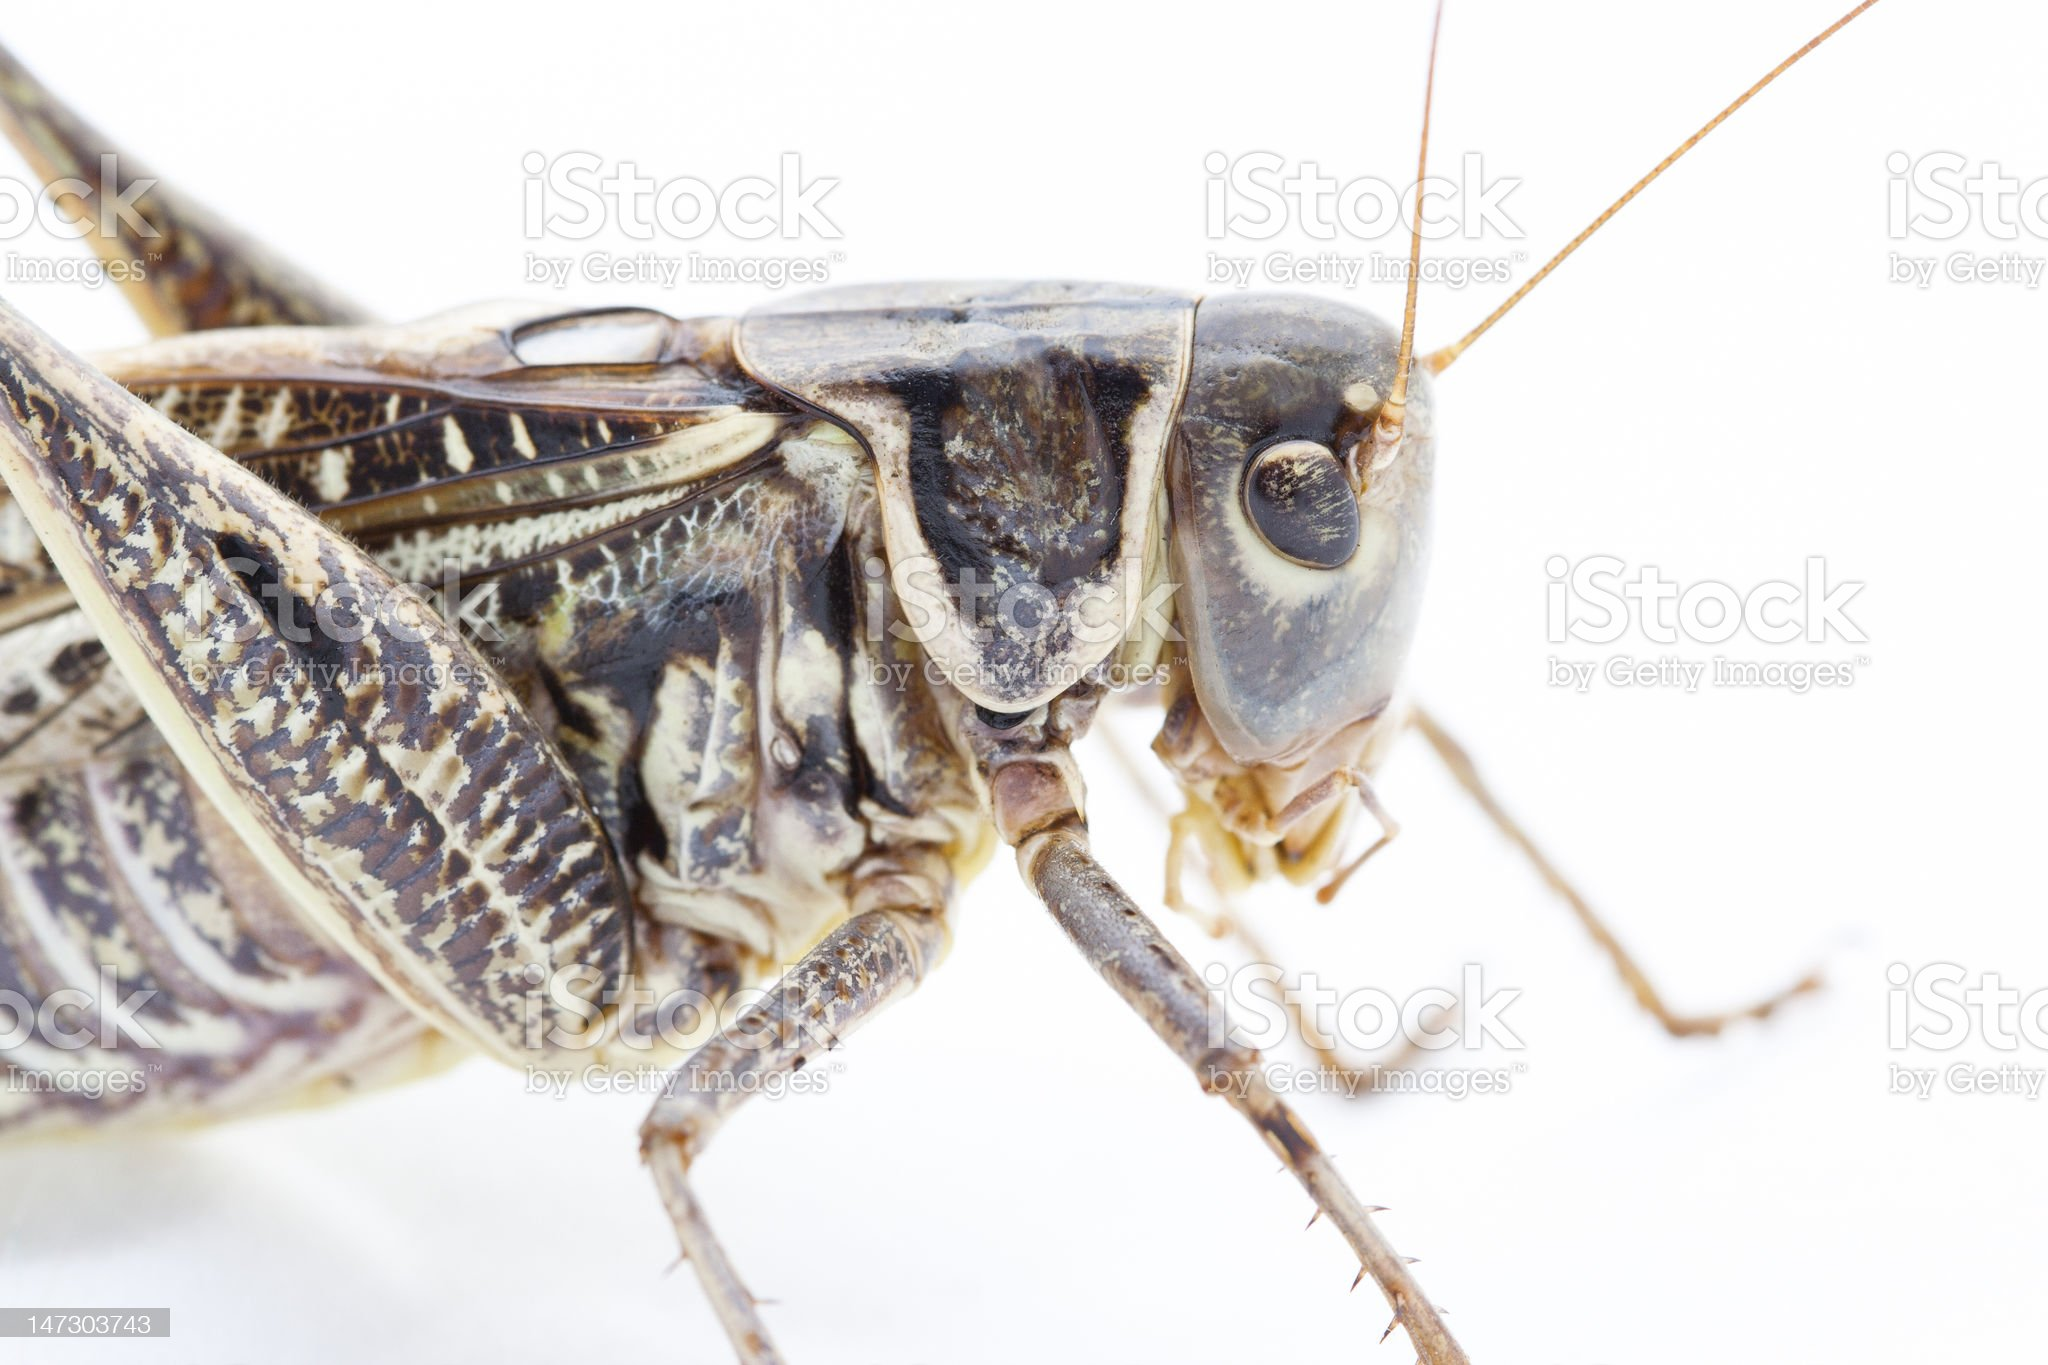 Grasshoper close-up royalty-free stock photo